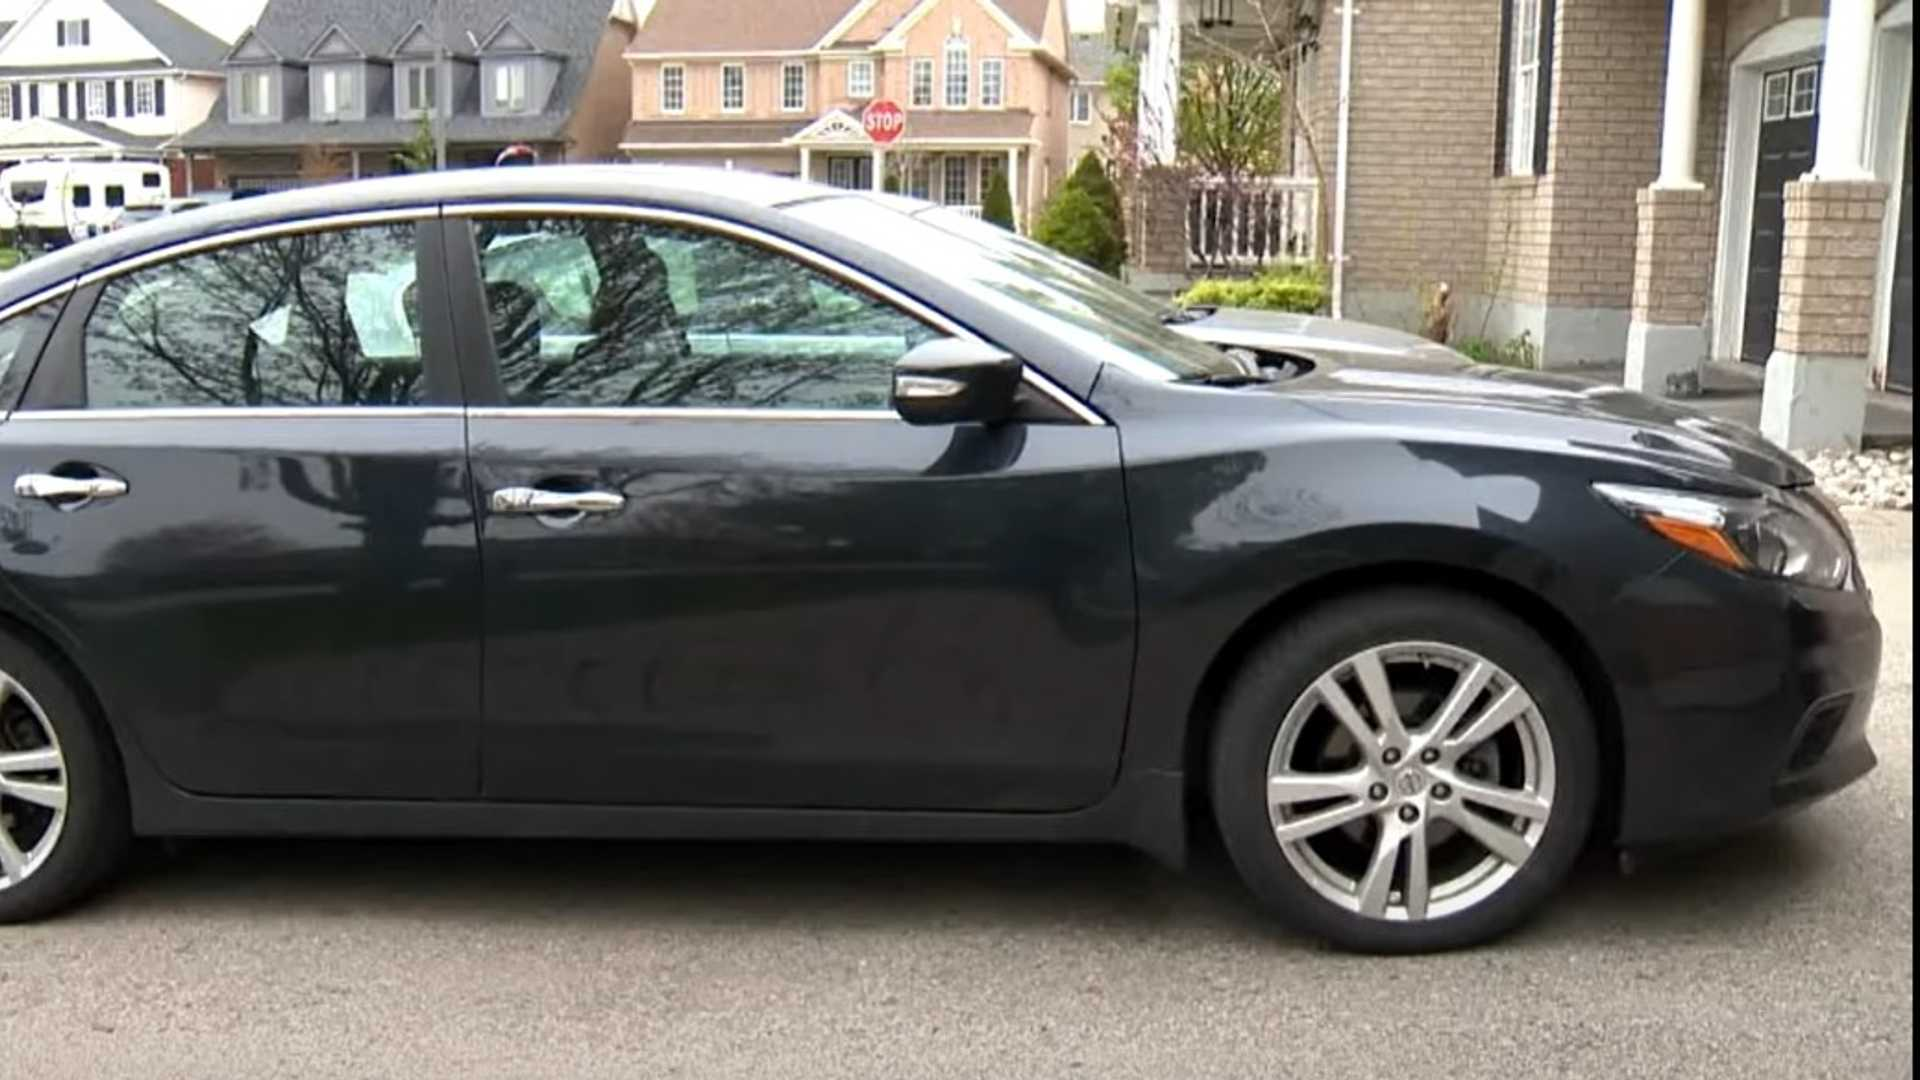 Nissan Altima Owner Discovers Dealer Drove It For 56 Miles